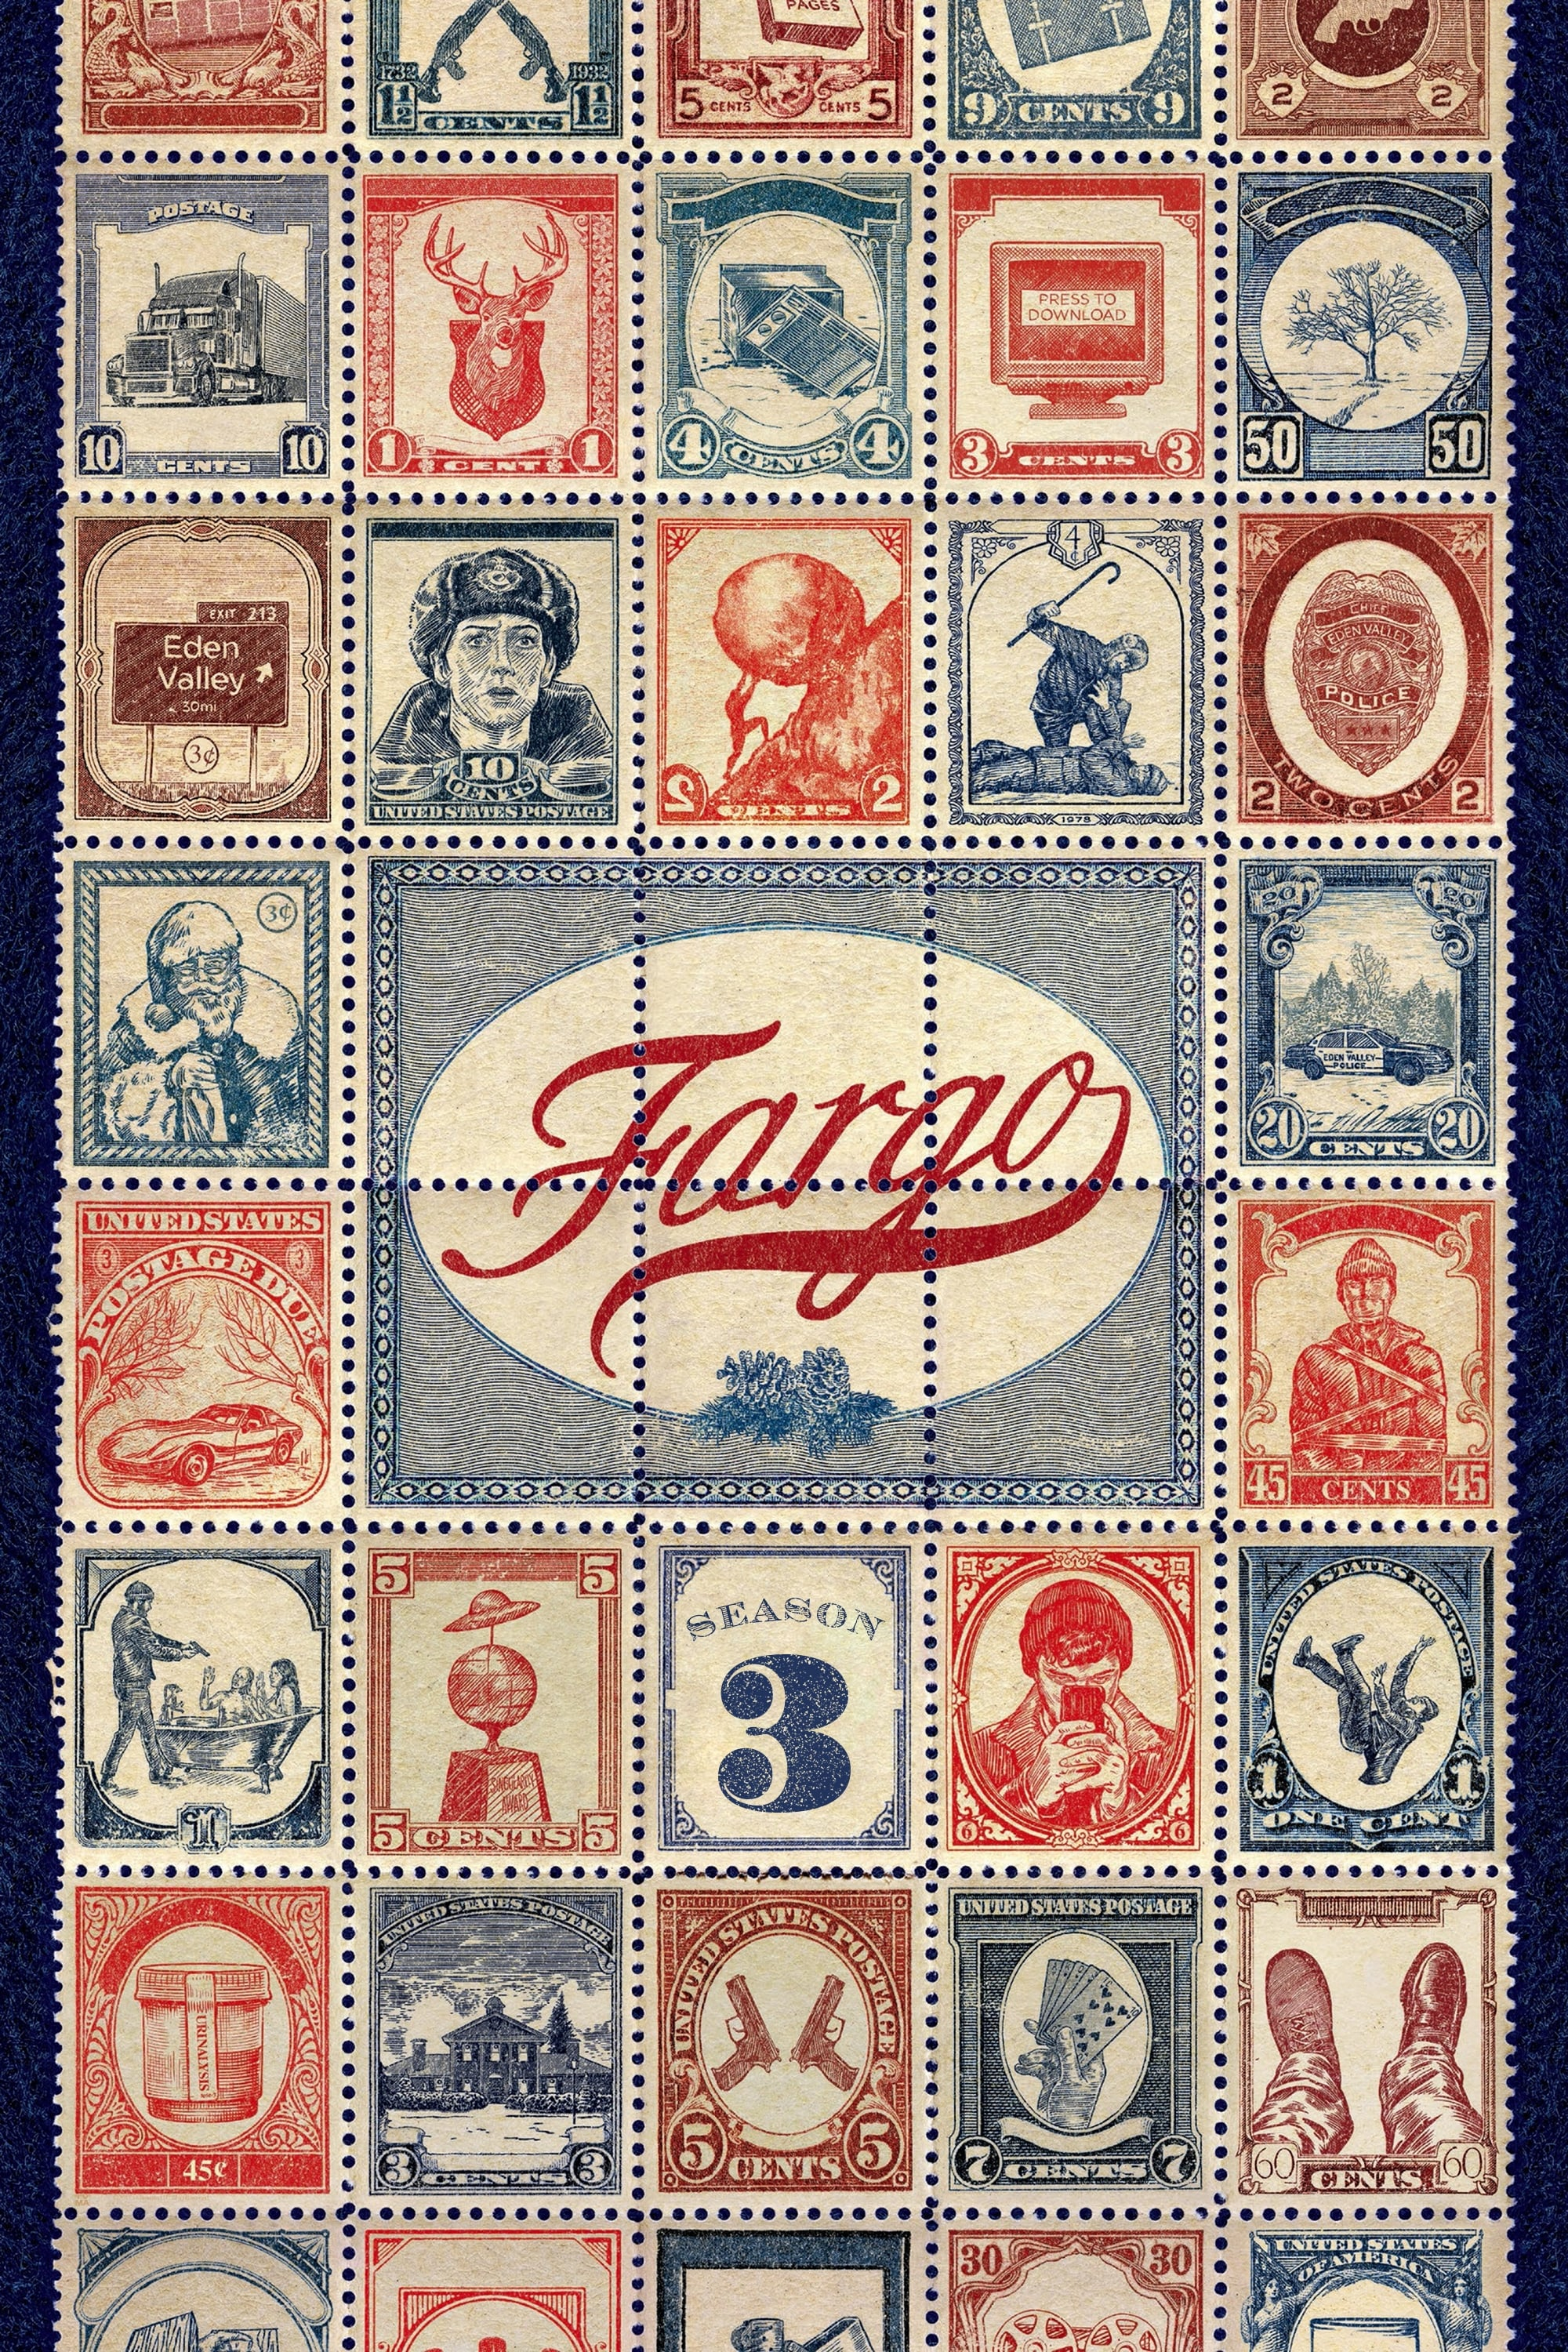 FARGO SEASON 3 putlocker 4k